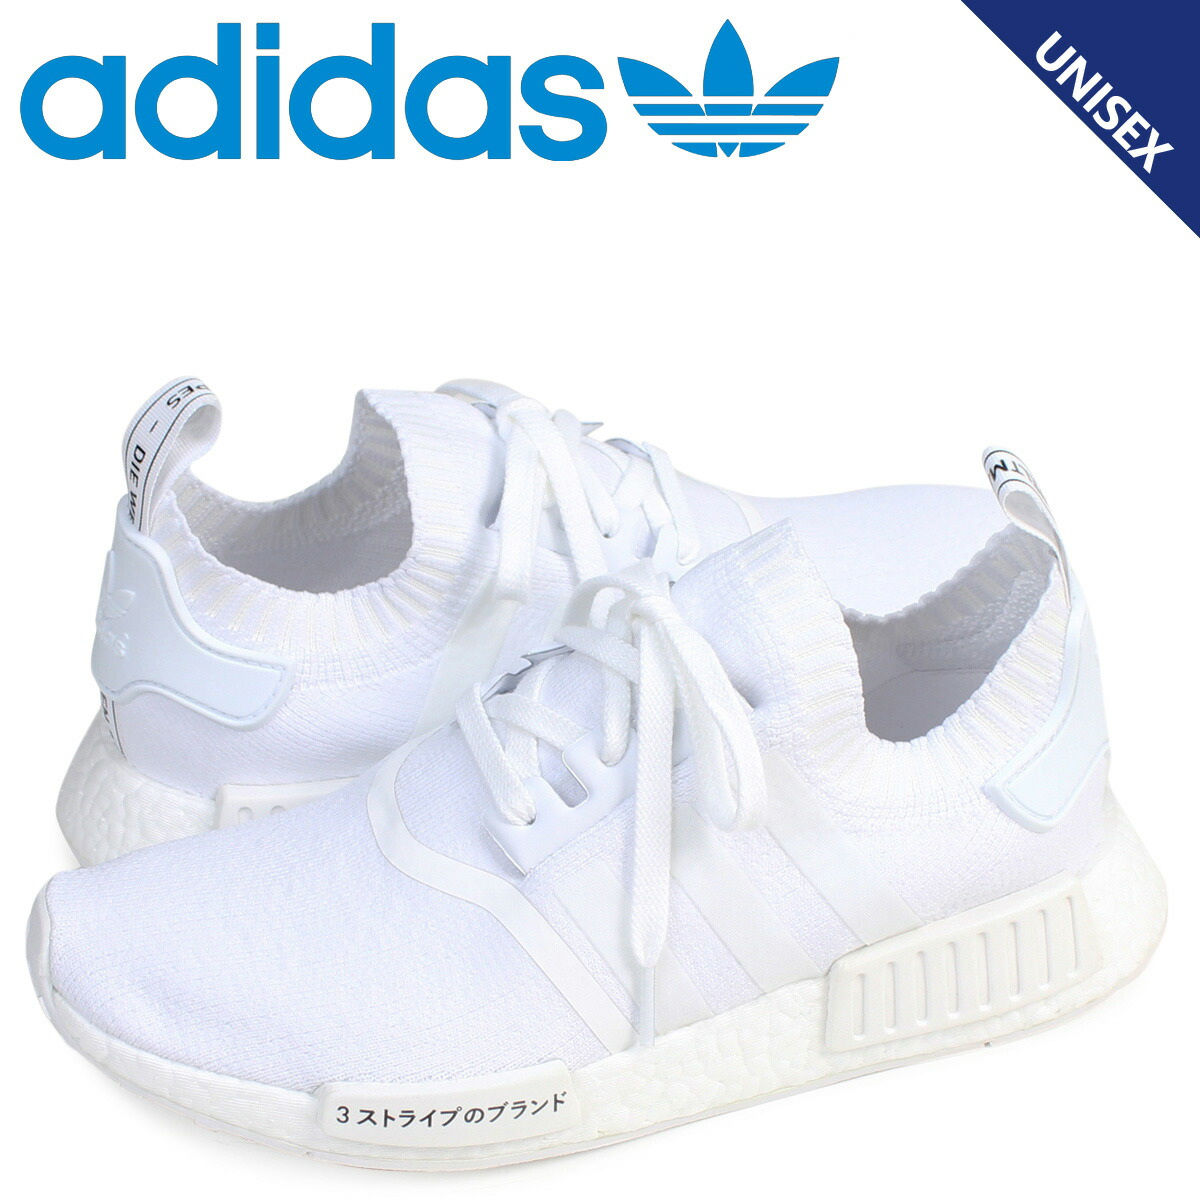 Adidas NMD R1 adidas originals sneakers N M D nomad PK men gap Dis BZ0221  shoes white  load planned Shinnyu load in reservation product 8 12  containing  14d1d1eb2317